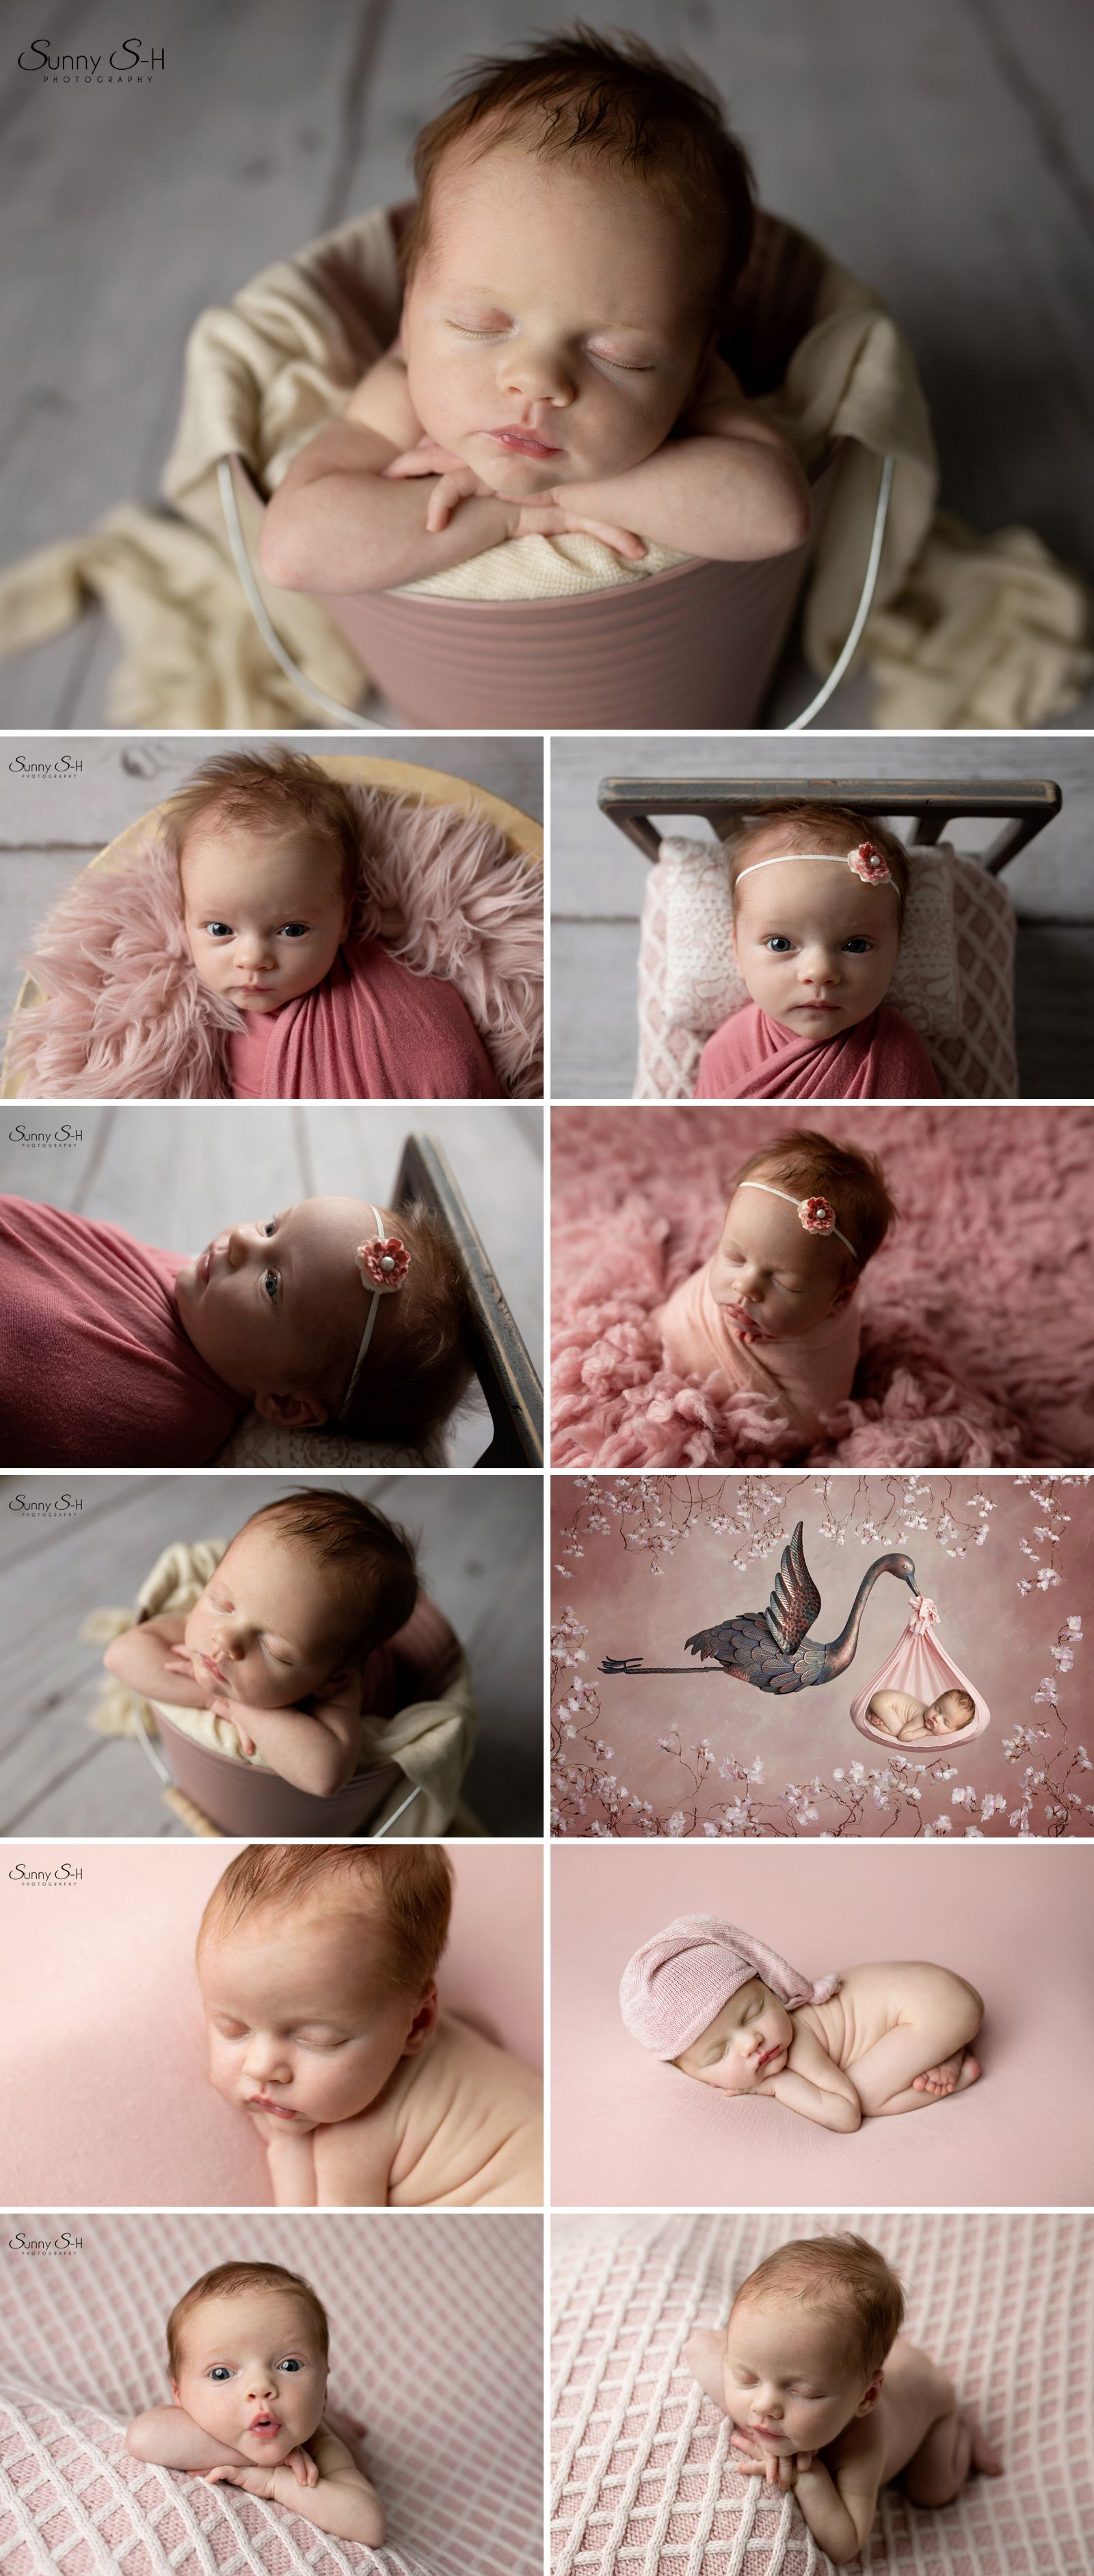 15 day old madeline and her pink studio newborn session with sunny s h photography winnipeg